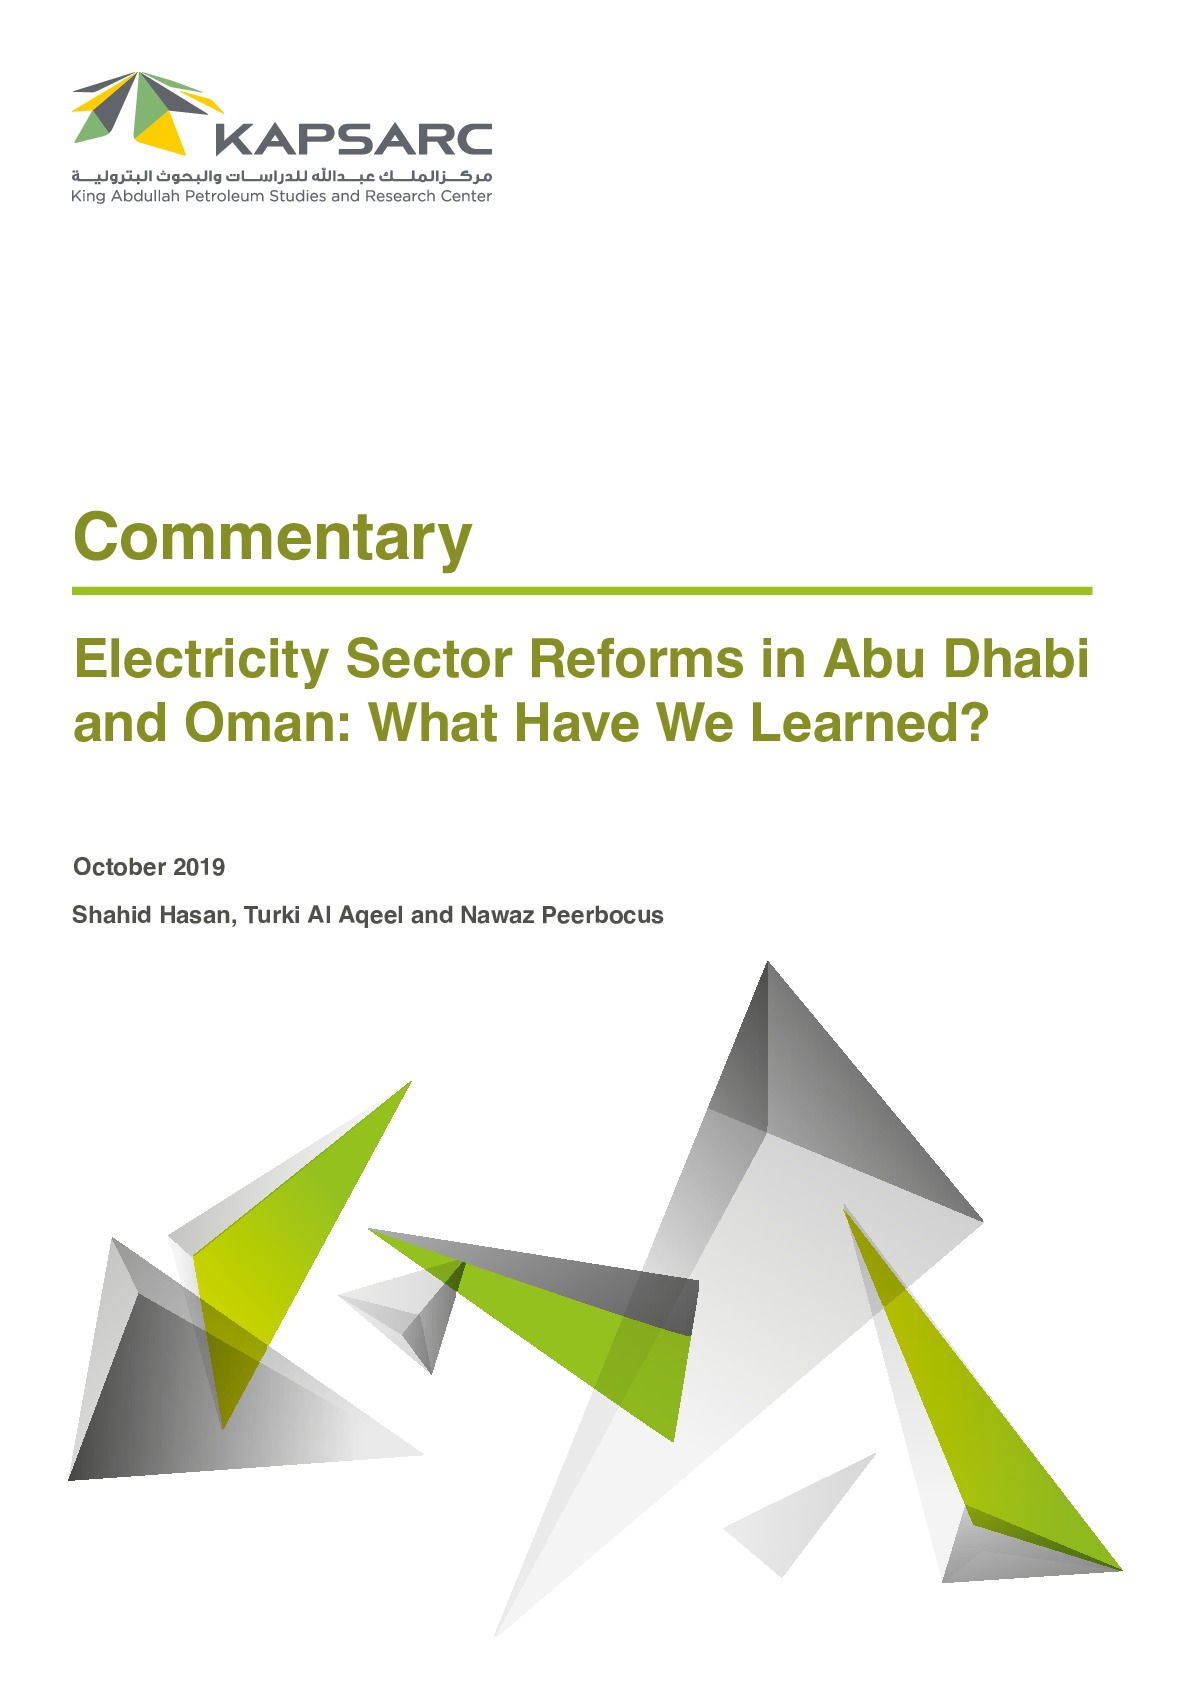 Electricity Sector Reforms in Abu Dhabi and Oman: What Have We Learned?